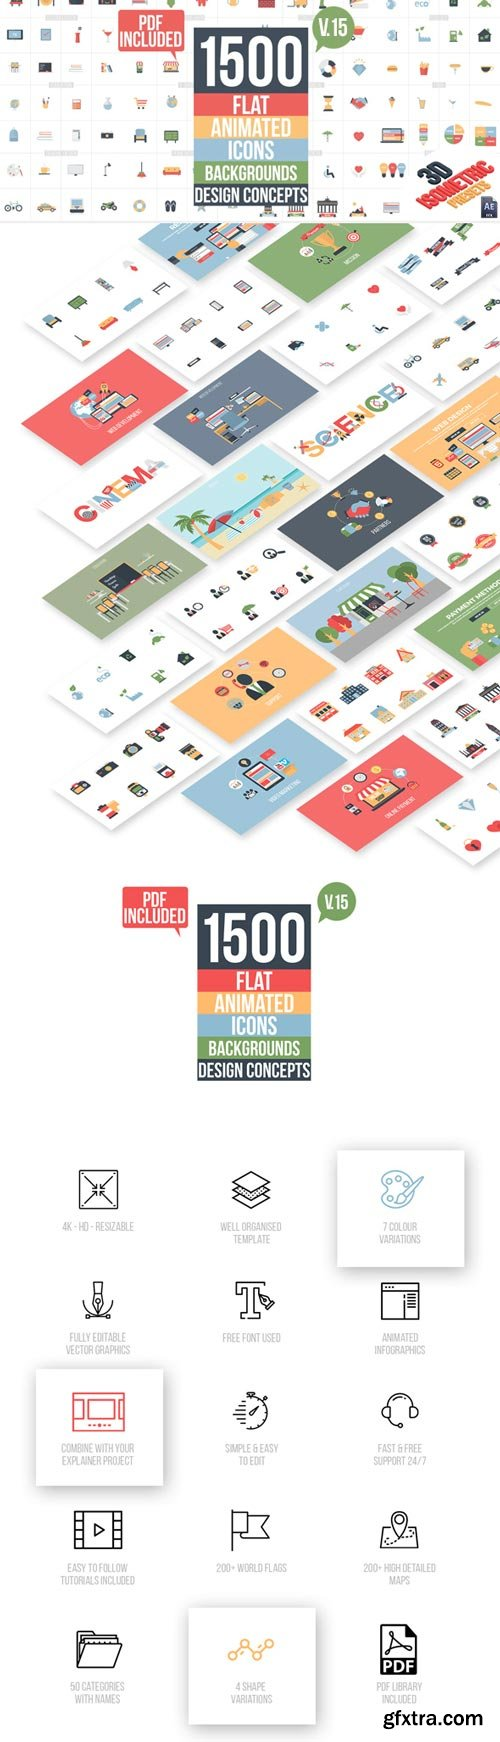 Videohive - Flat Animated Icons Library V16 - 11453830 (Updated 24 January 18)